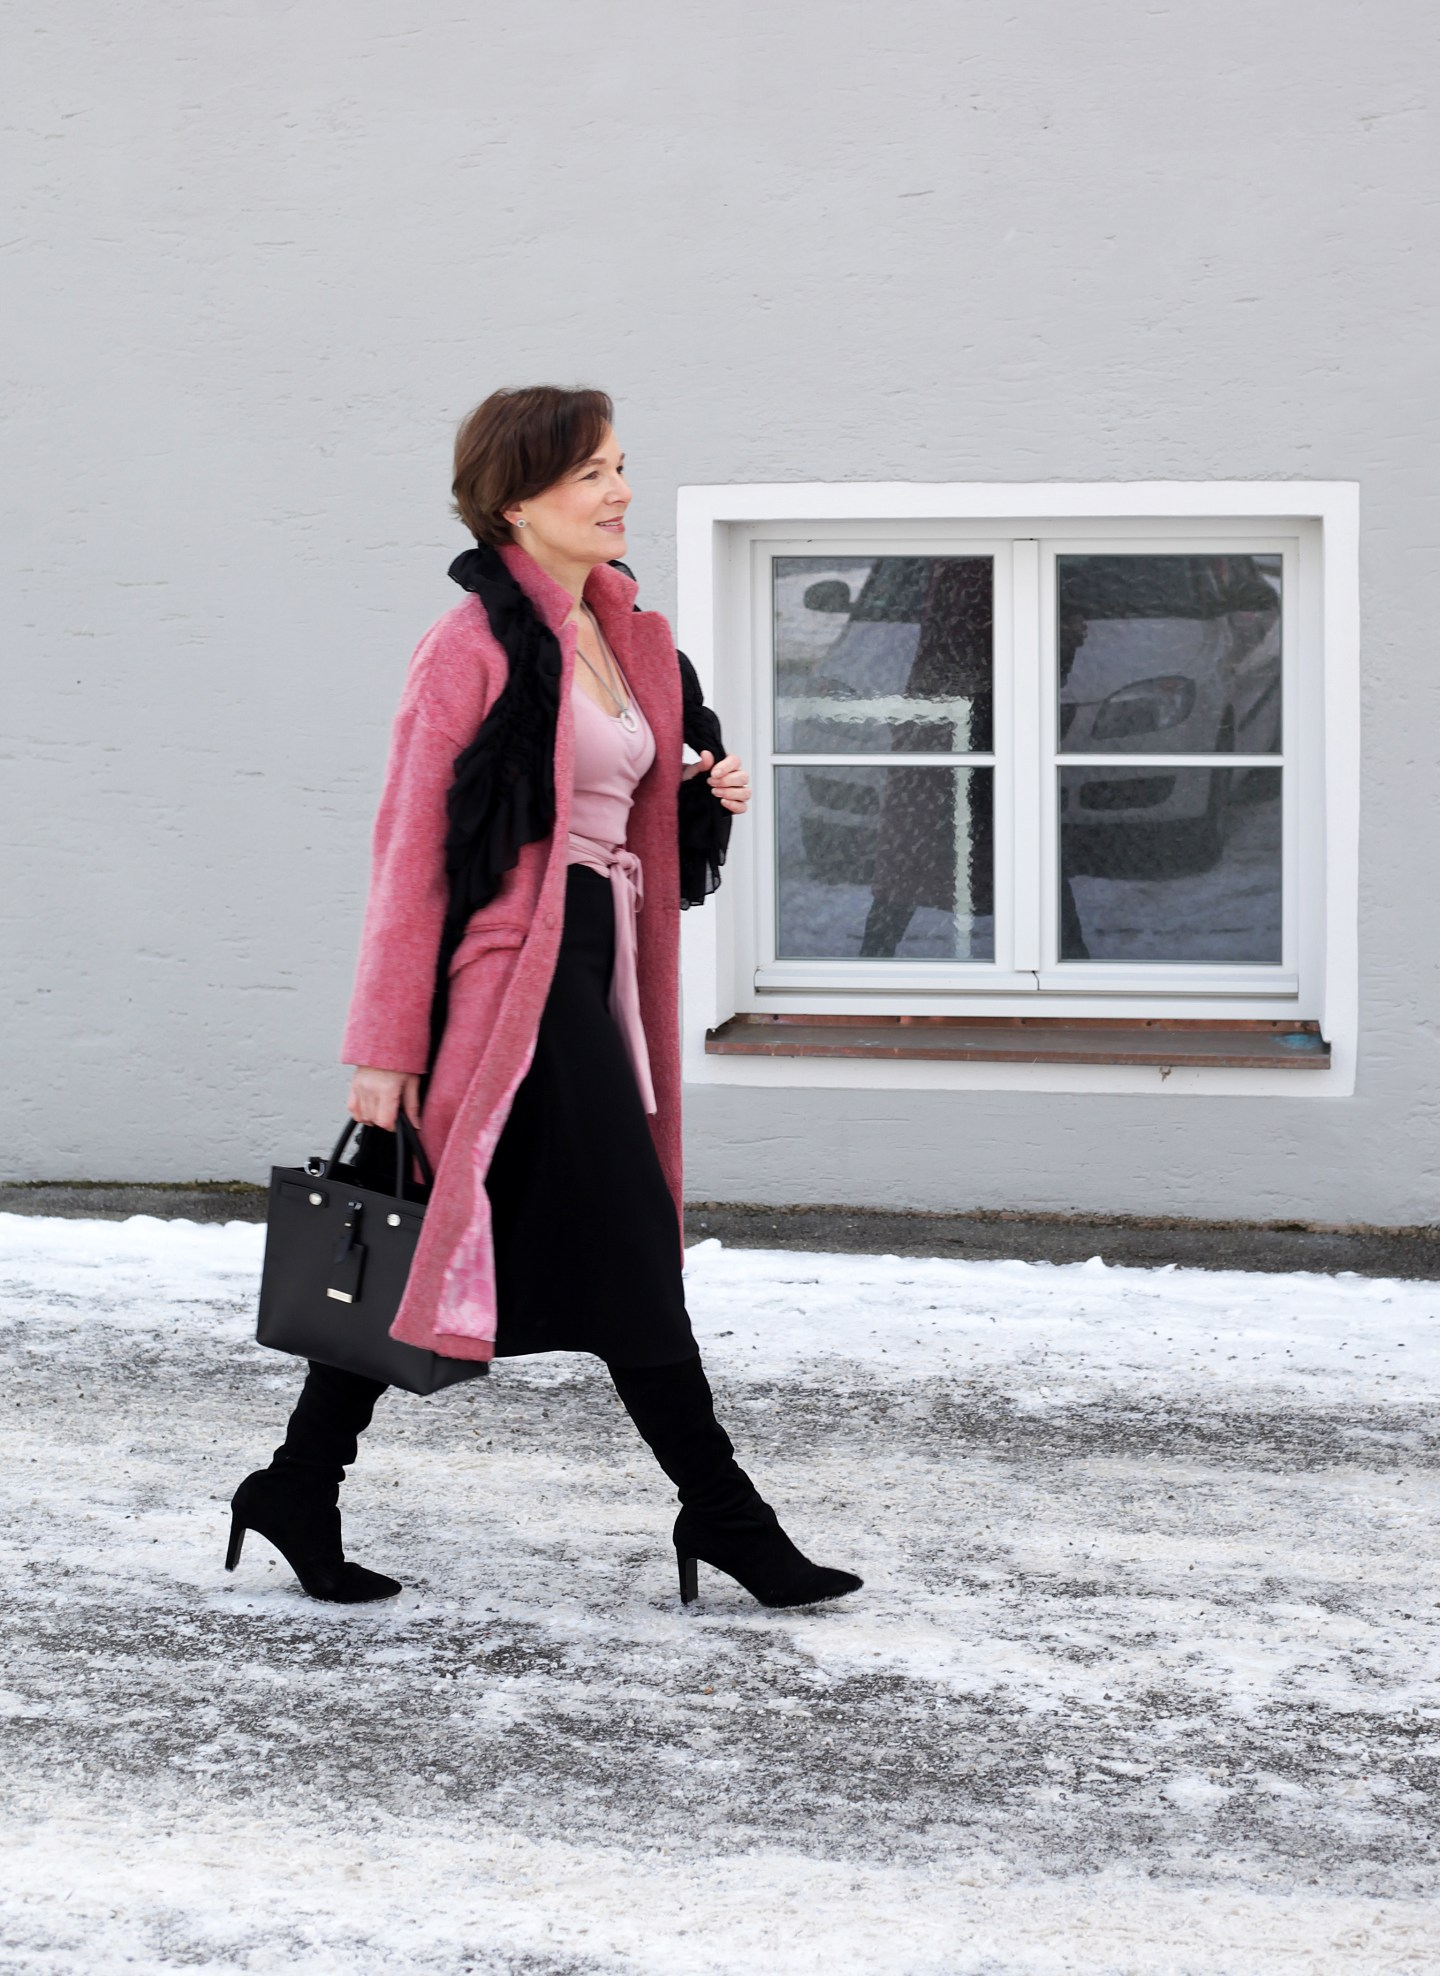 LadyofStyle Wintermode Rosa Wollmantel Rock Wickelpulli 50plus Blogger